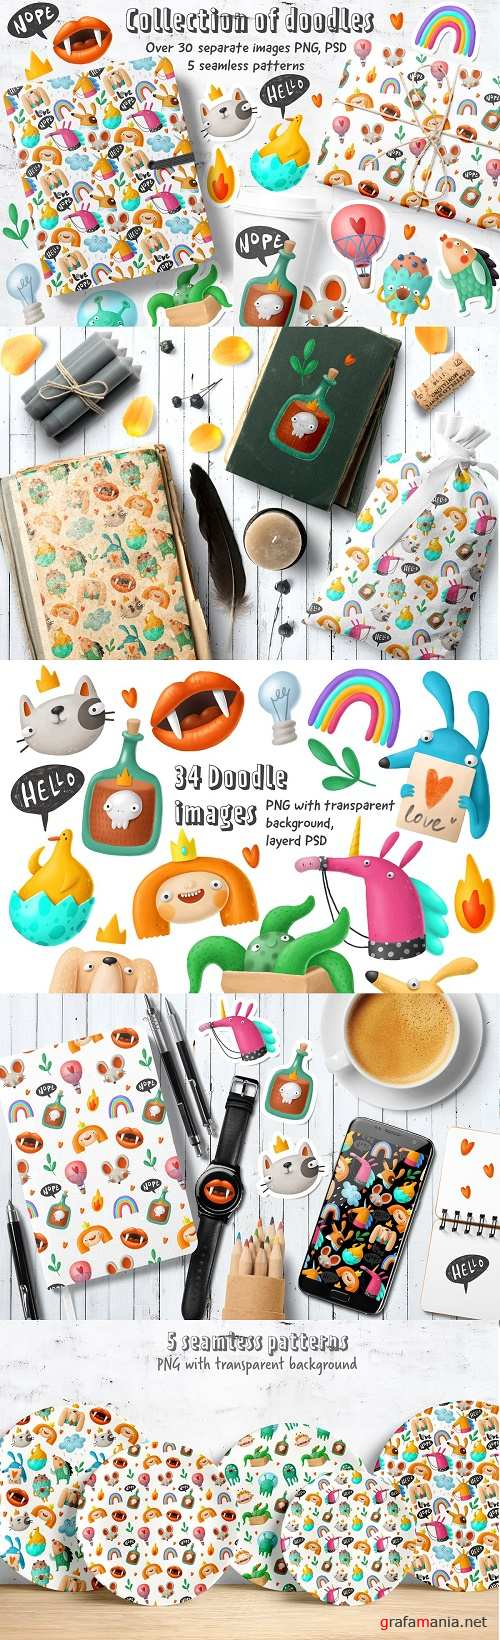 Collection of doodles - 2976709 - Cartoon Doodles Clipart